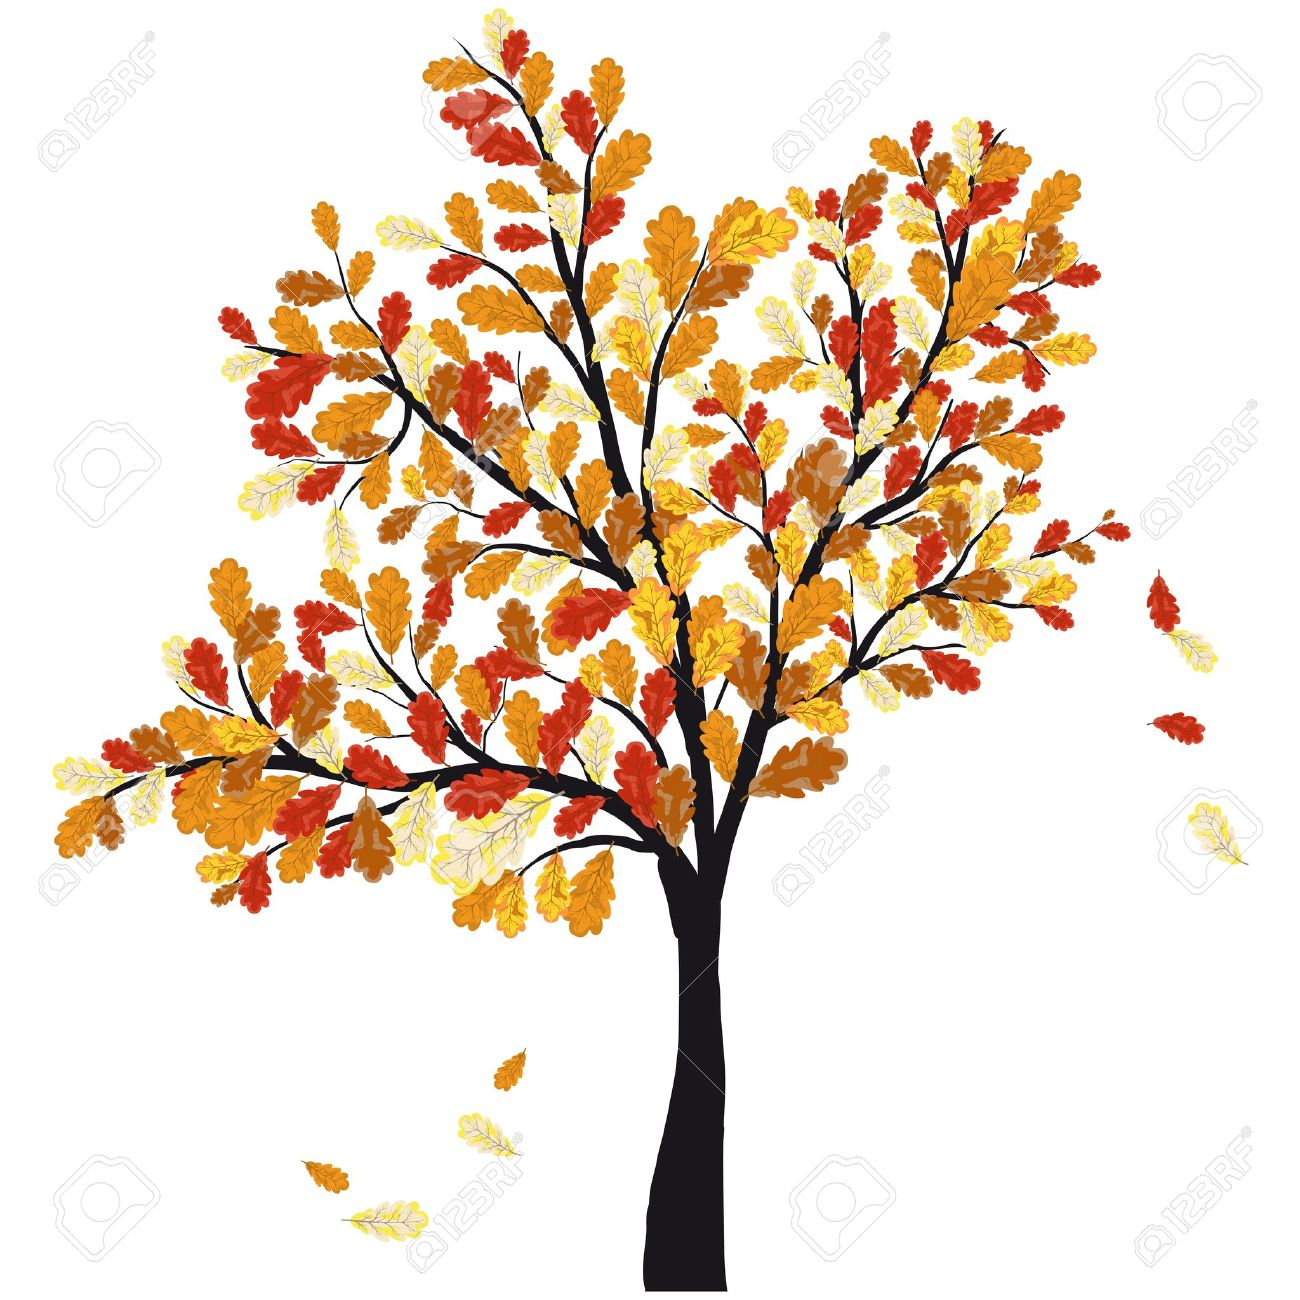 Autumn oak tree with falling leaves. illustration. Stock Vector - 14970481